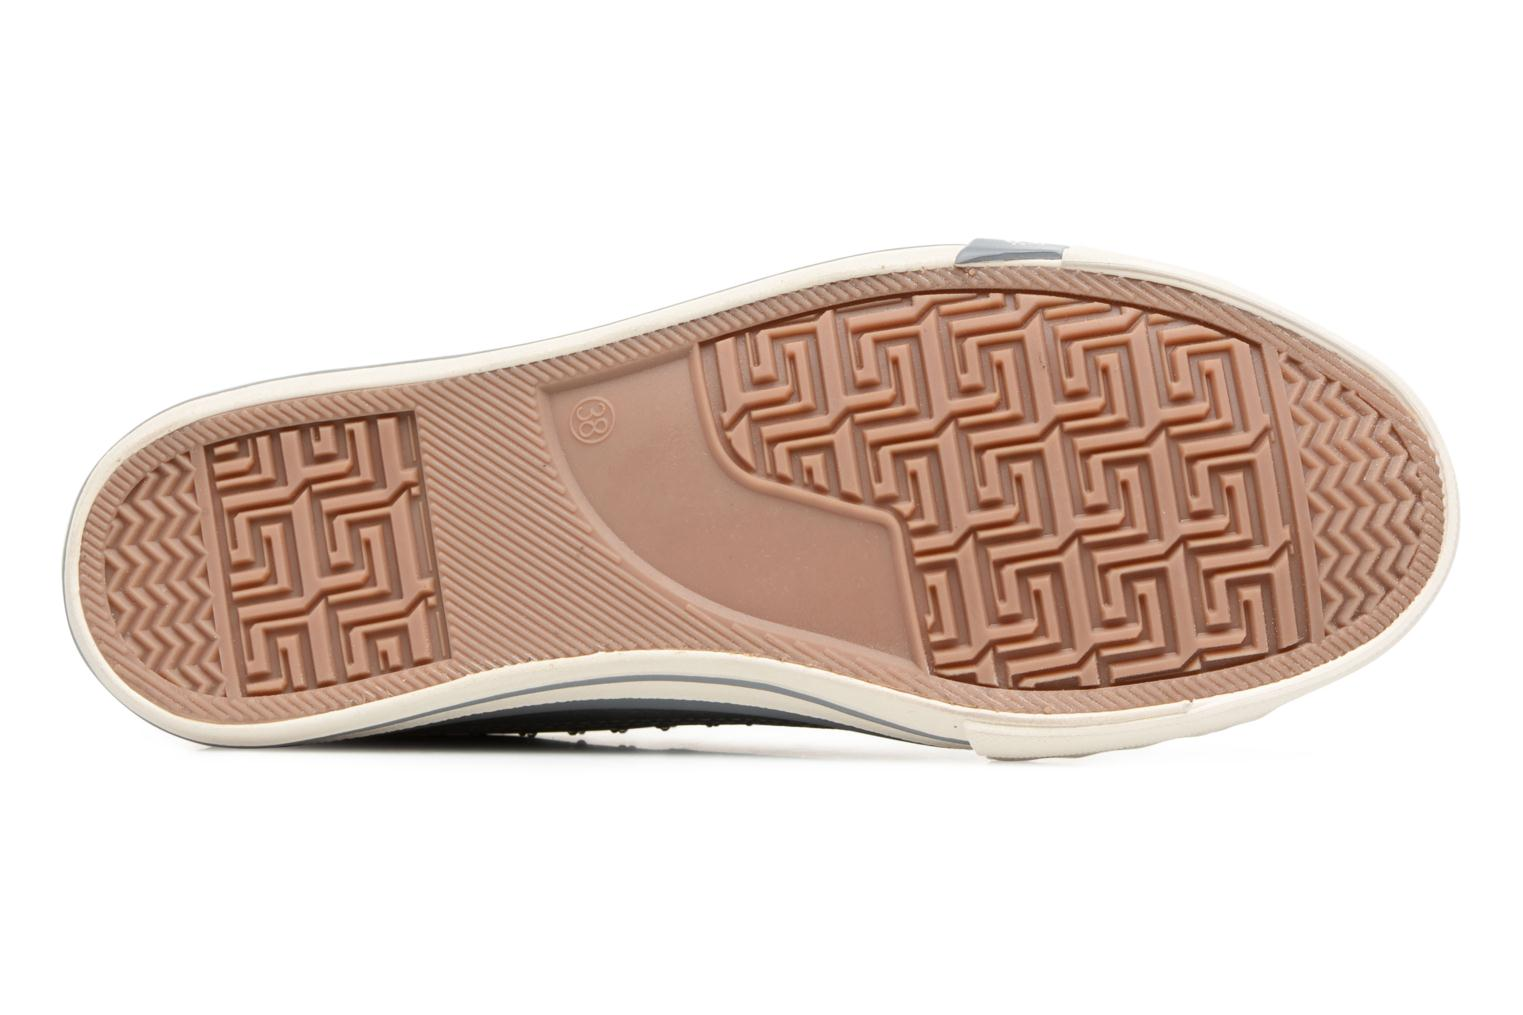 Gris Taupe Mustang shoes Verena (Beige)